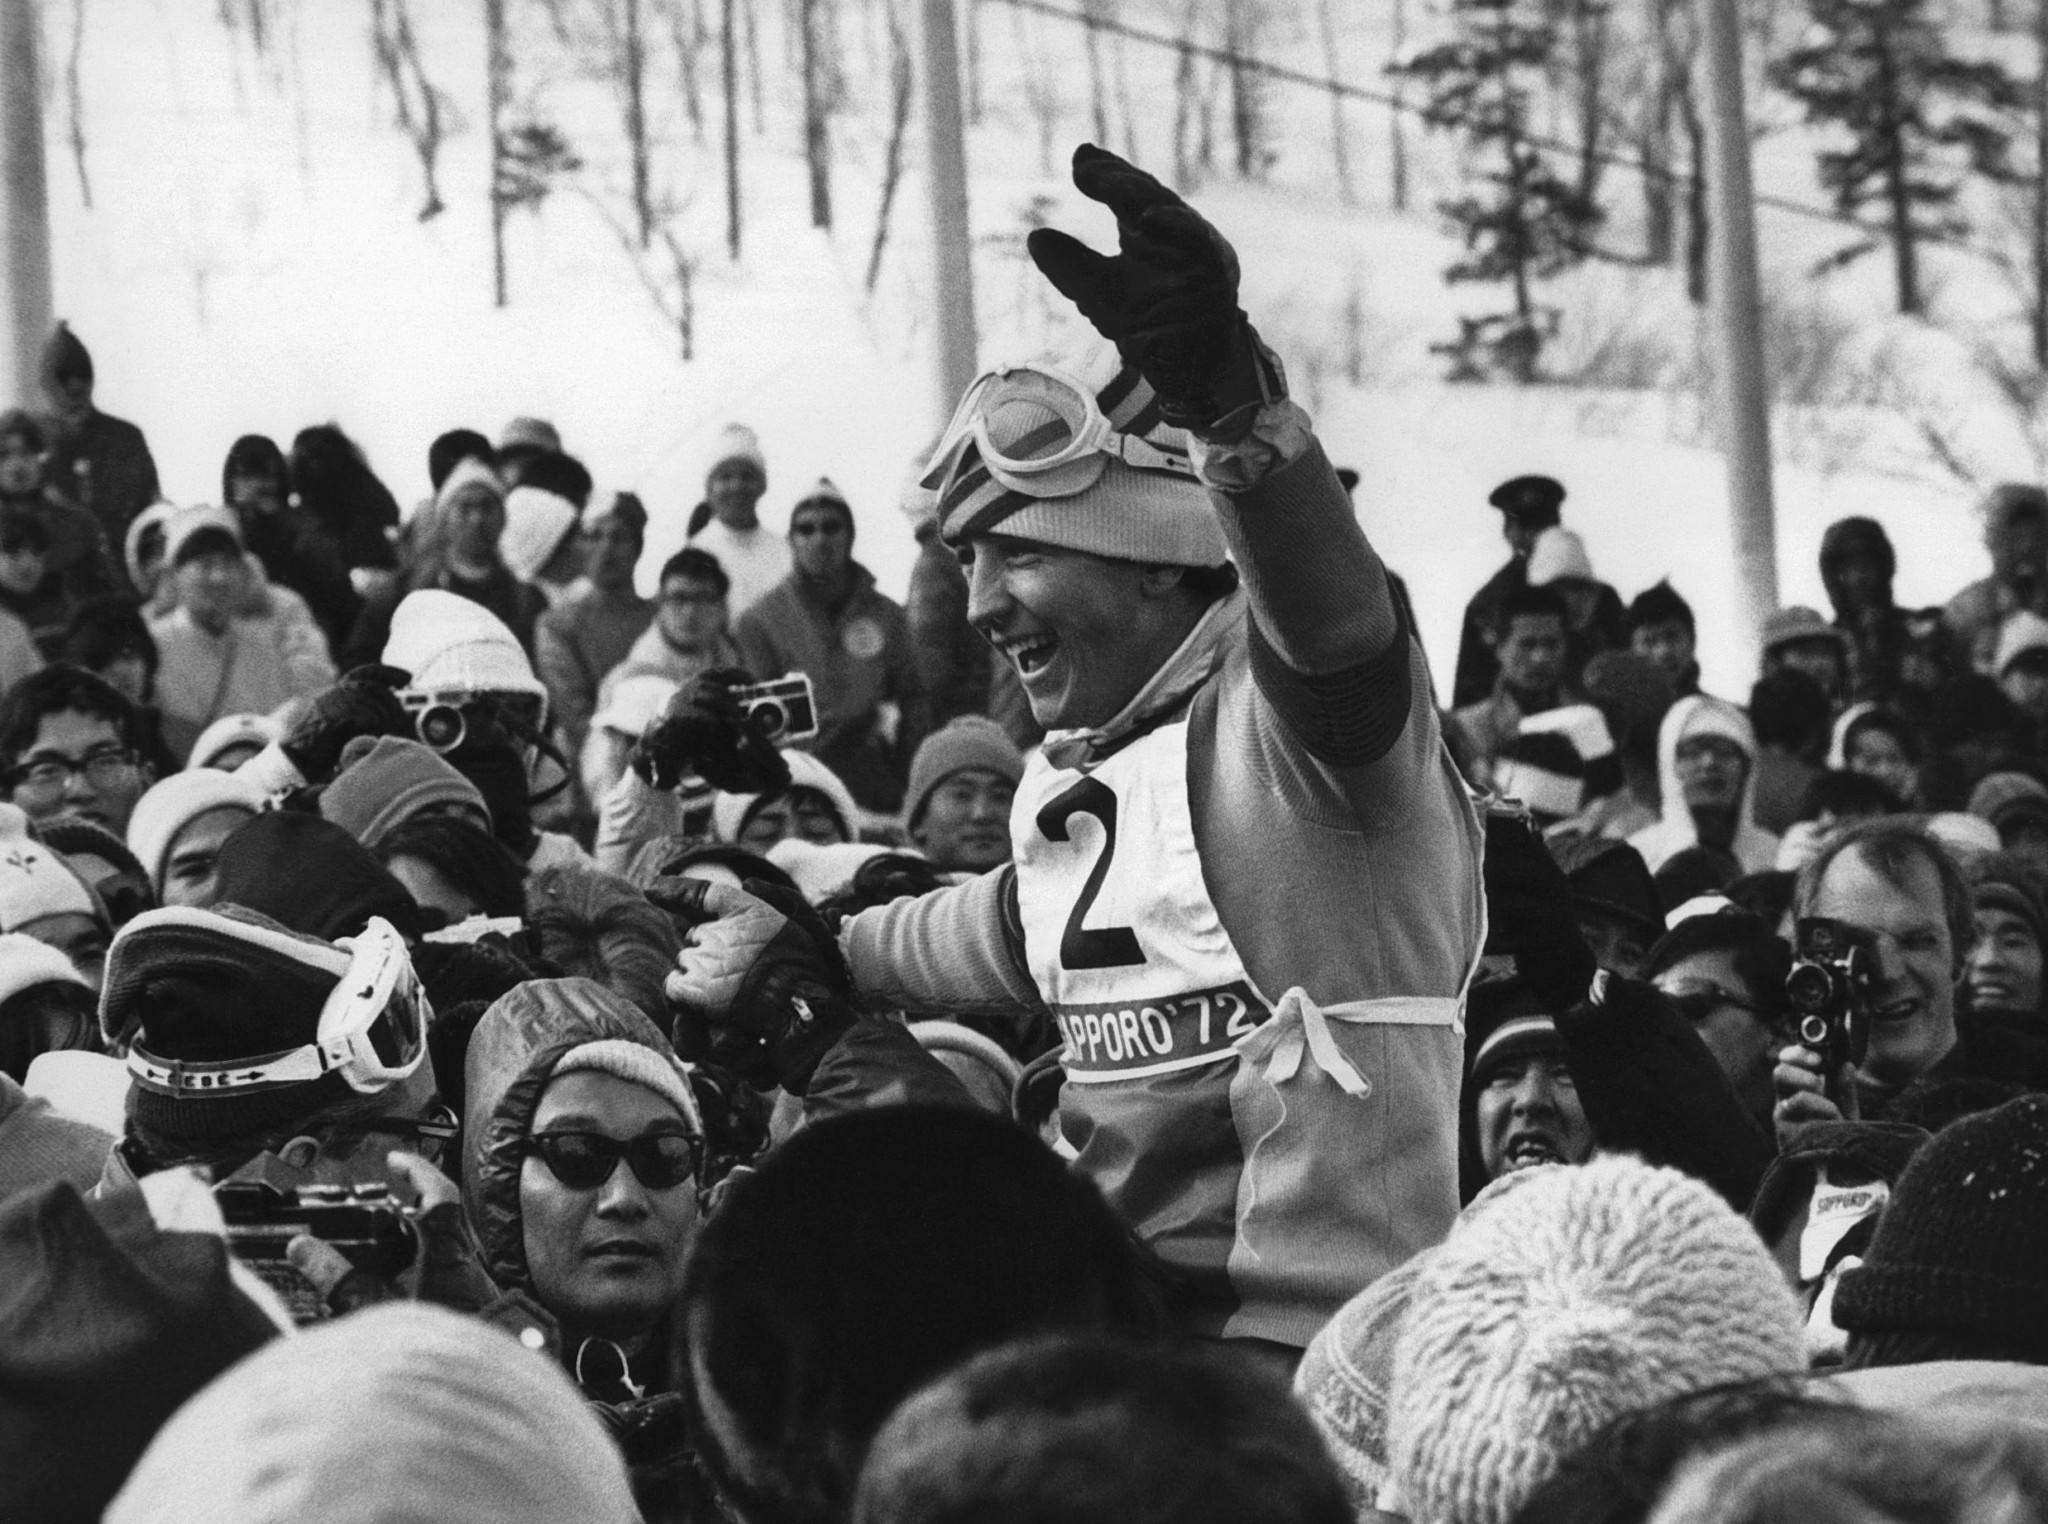 Francisco Fernandez Ochoa celebrates slalom gold at Sapporo 1972 ©Getty Images